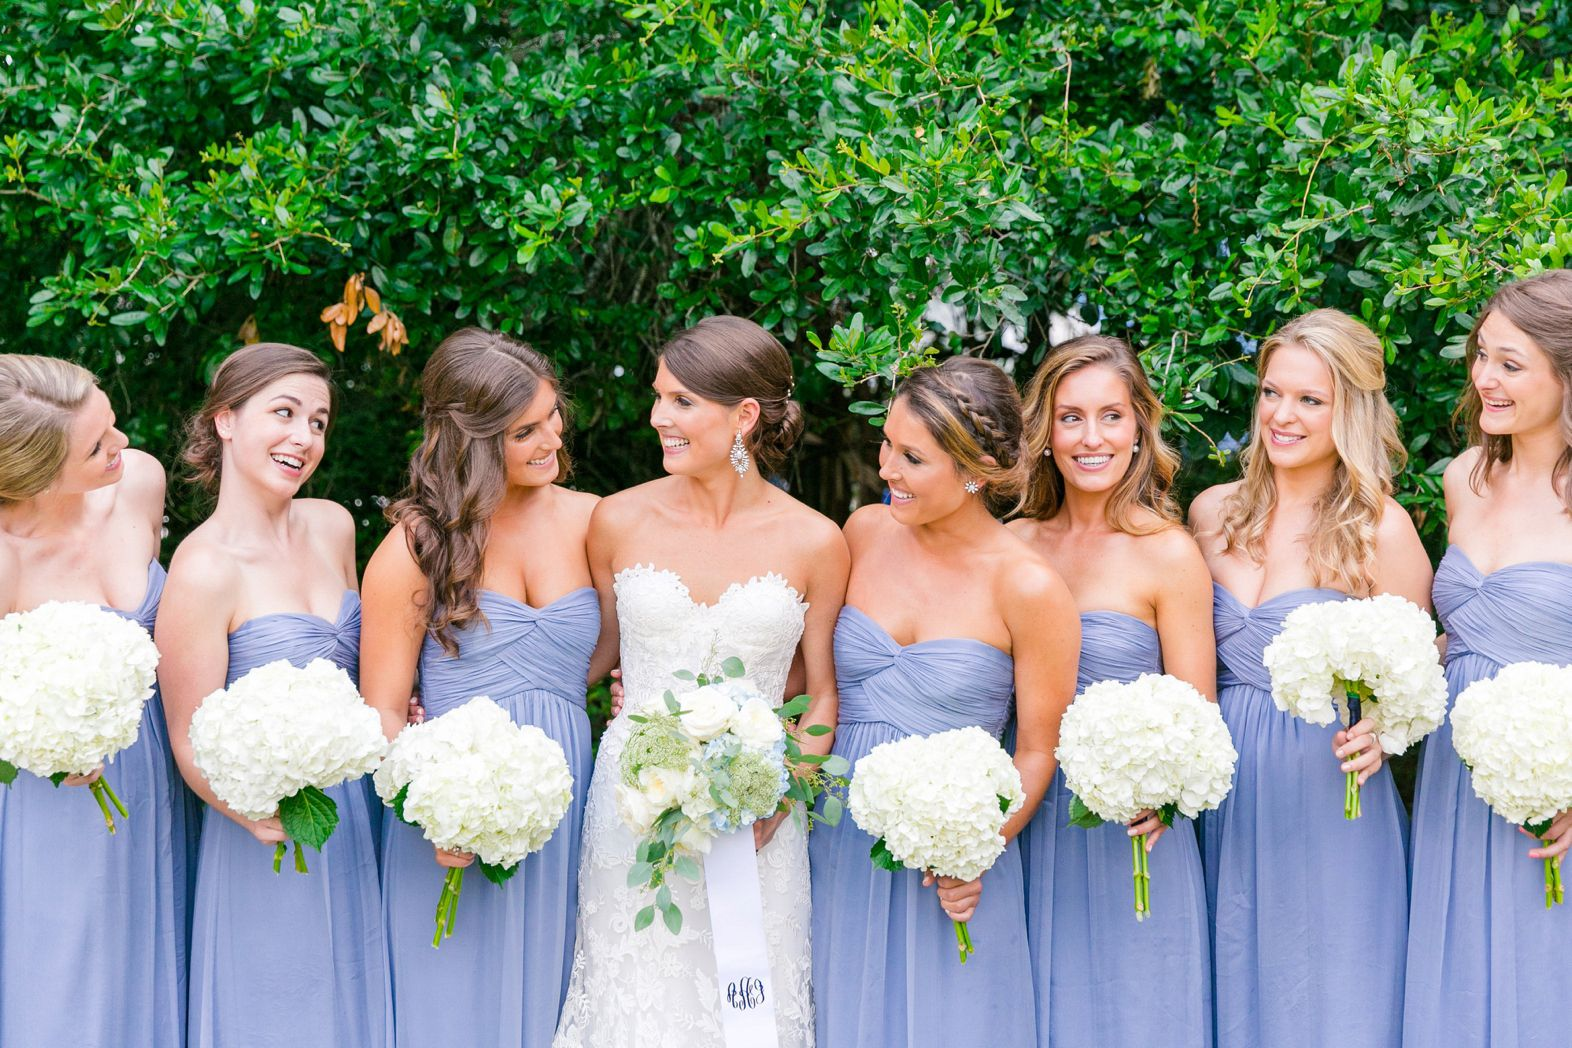 French Blue Cornflower Periwinkle Bridesmaid Dresses With Hydrangeas Queen Anne S Lace Garden Roses Summer White Island House Wedding By